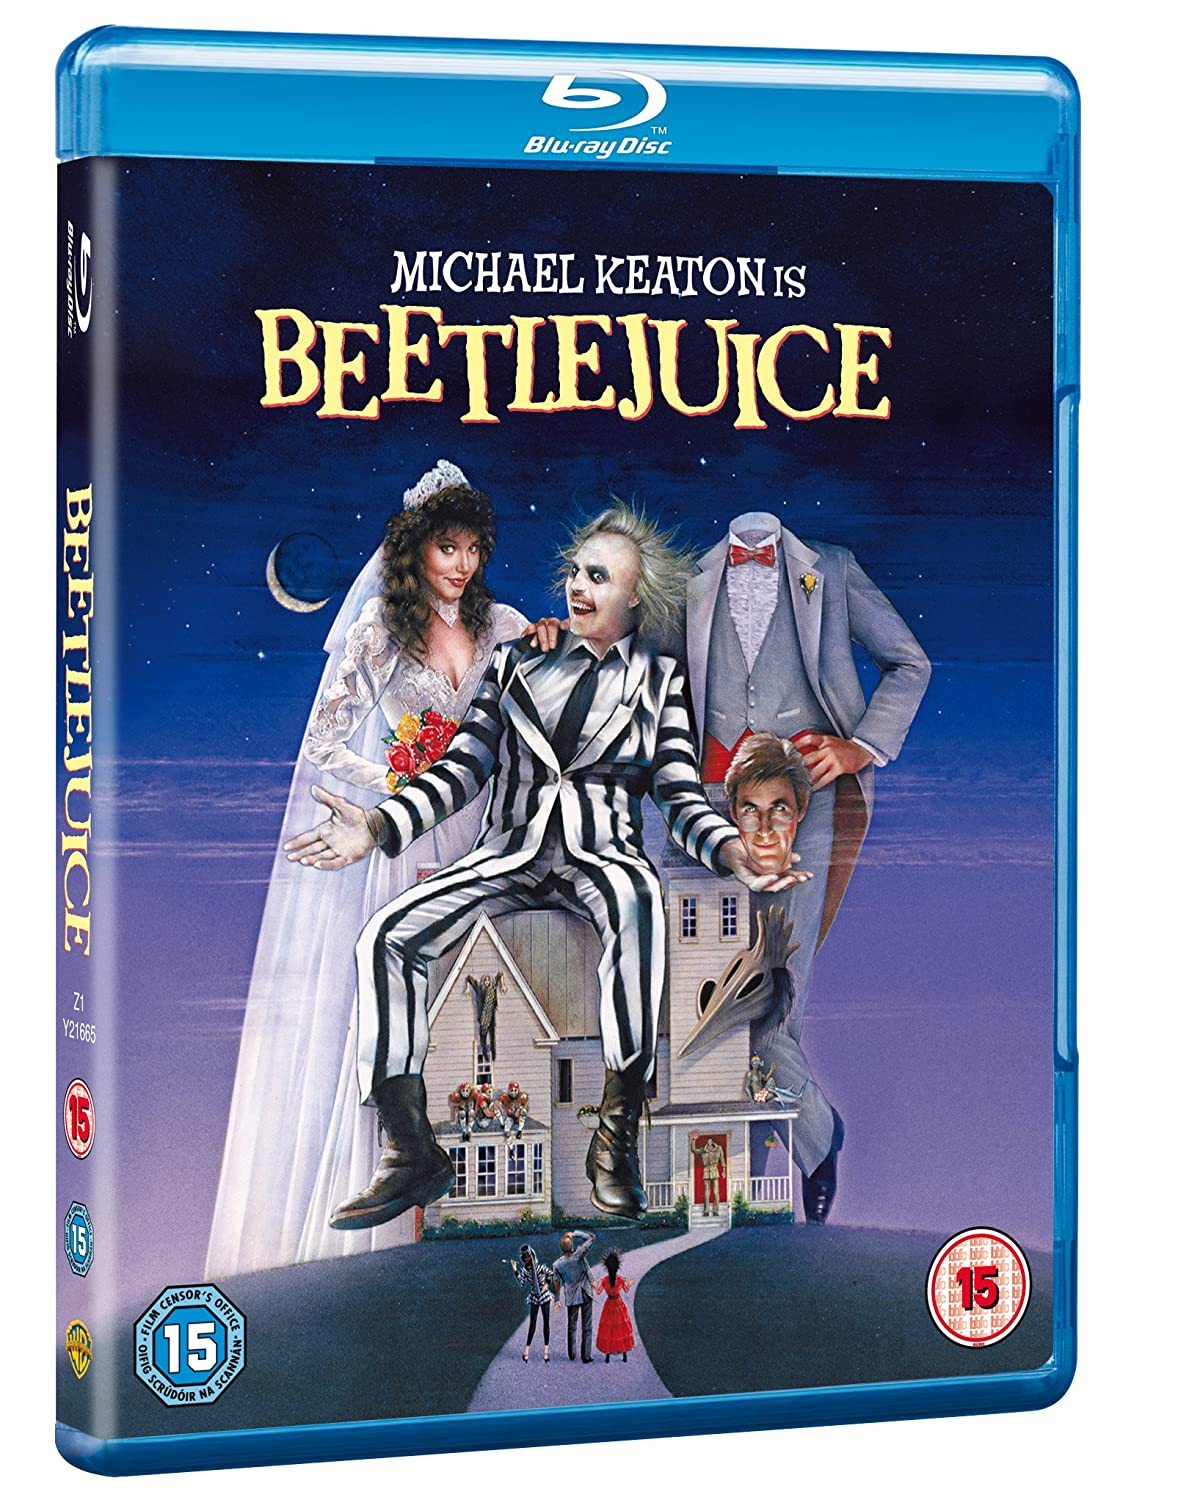 Beetlejuice [Blu-ray] [1988] [Region Free]: Amazon co uk